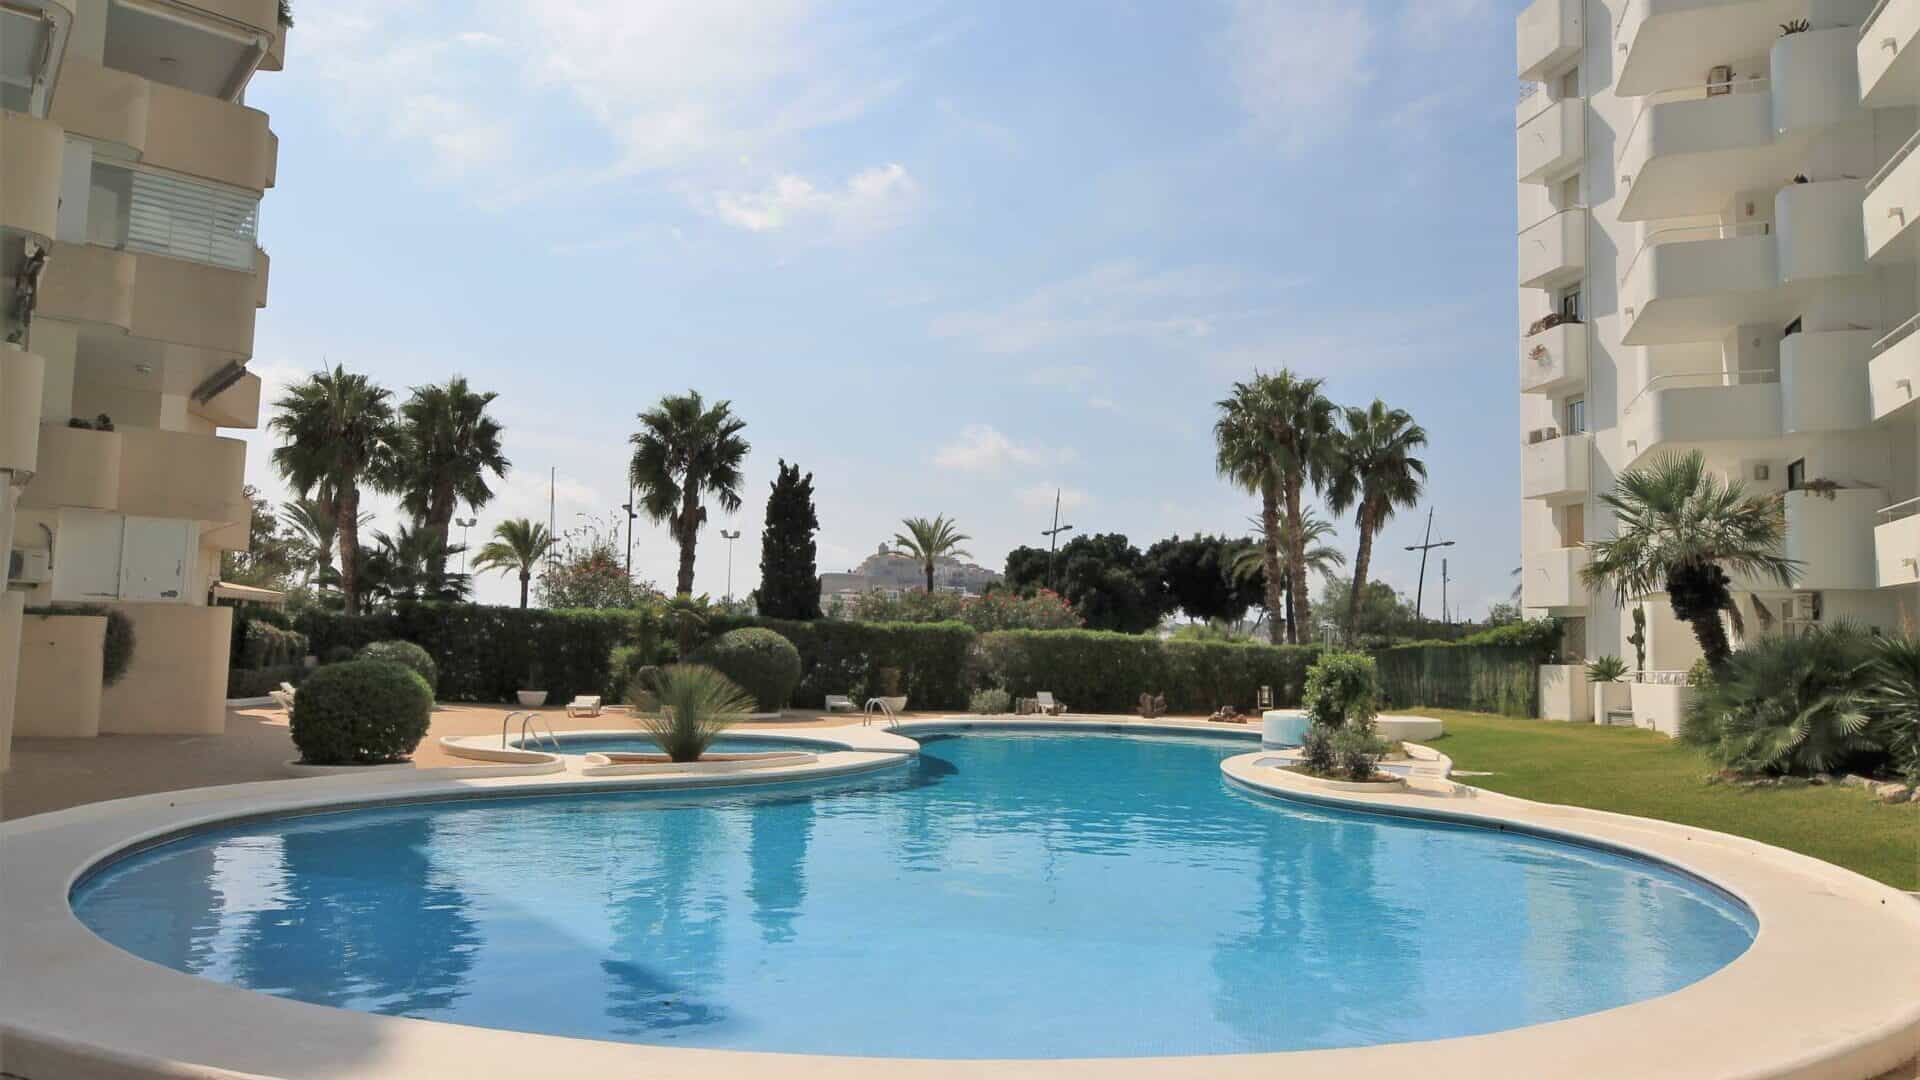 New refurbished flat for Sale in Marina Botafoch near yachting harbour